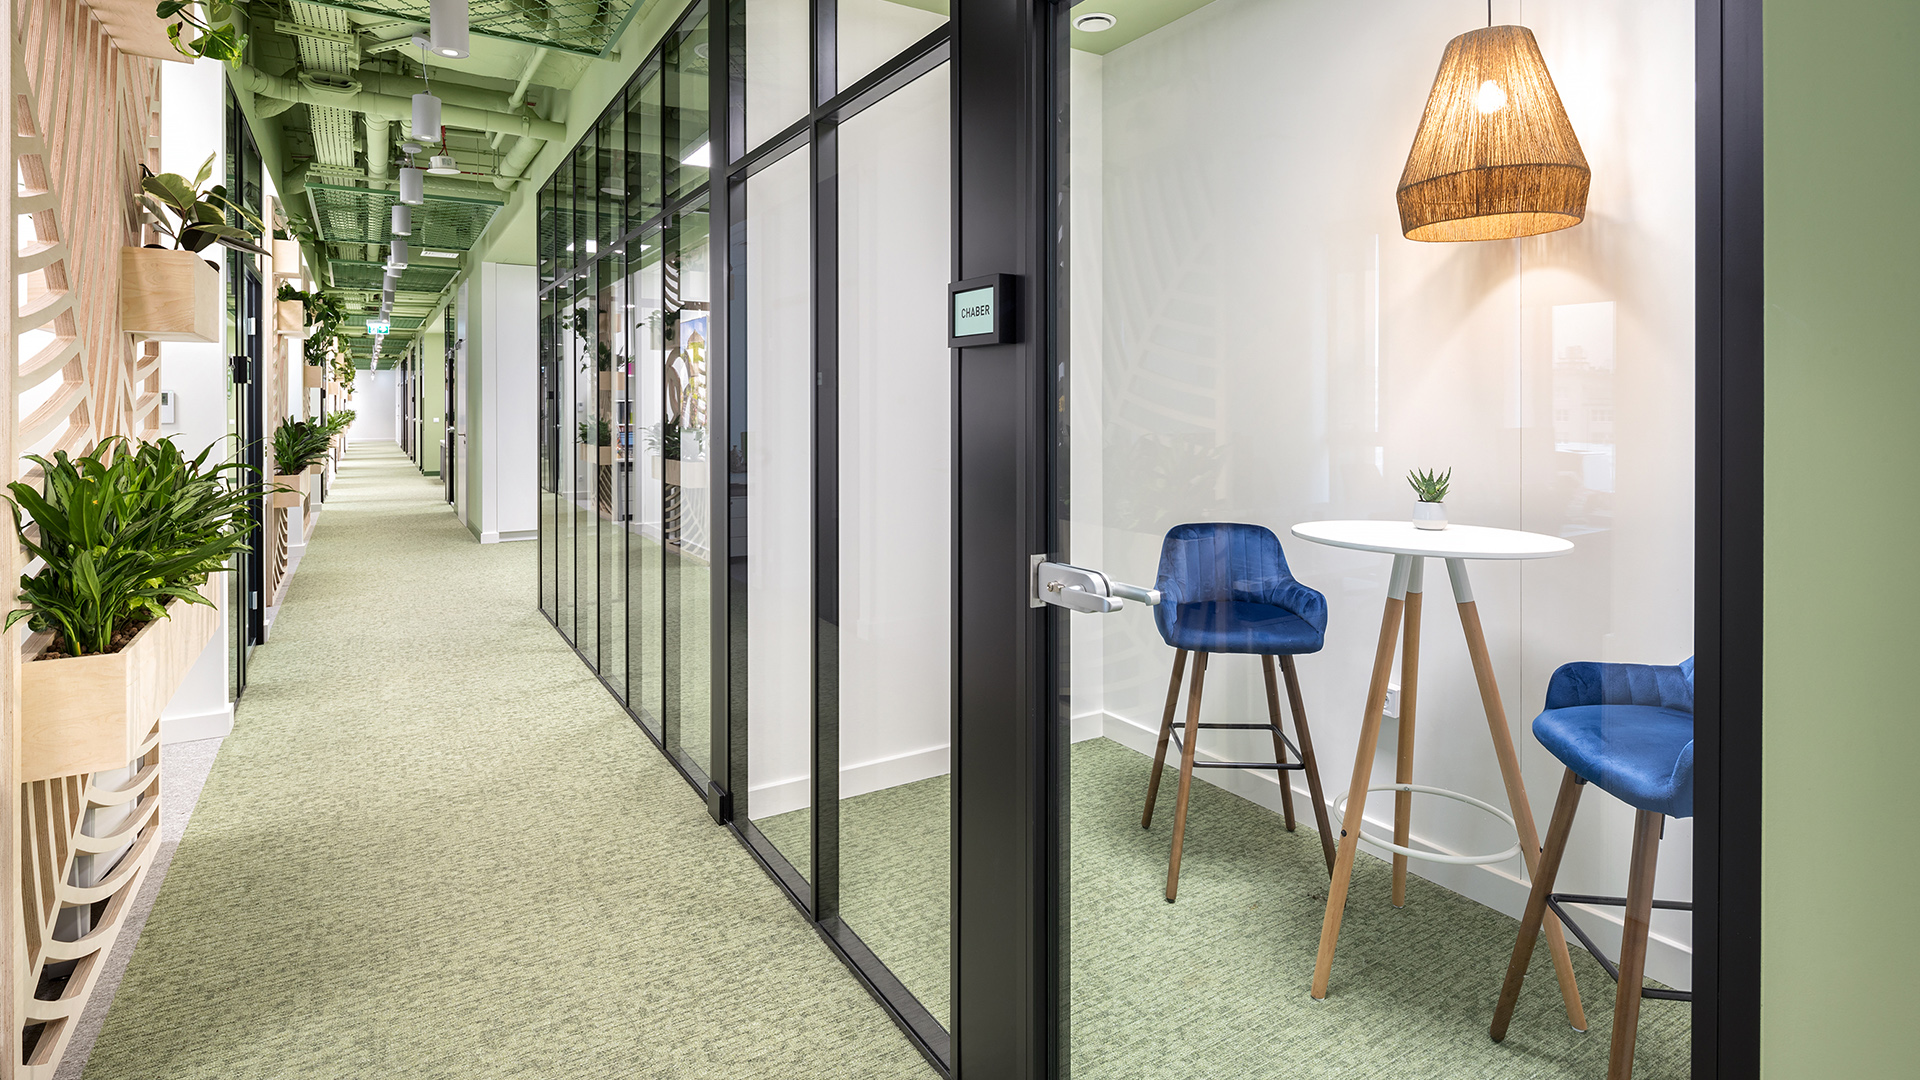 One on one meeting rooms